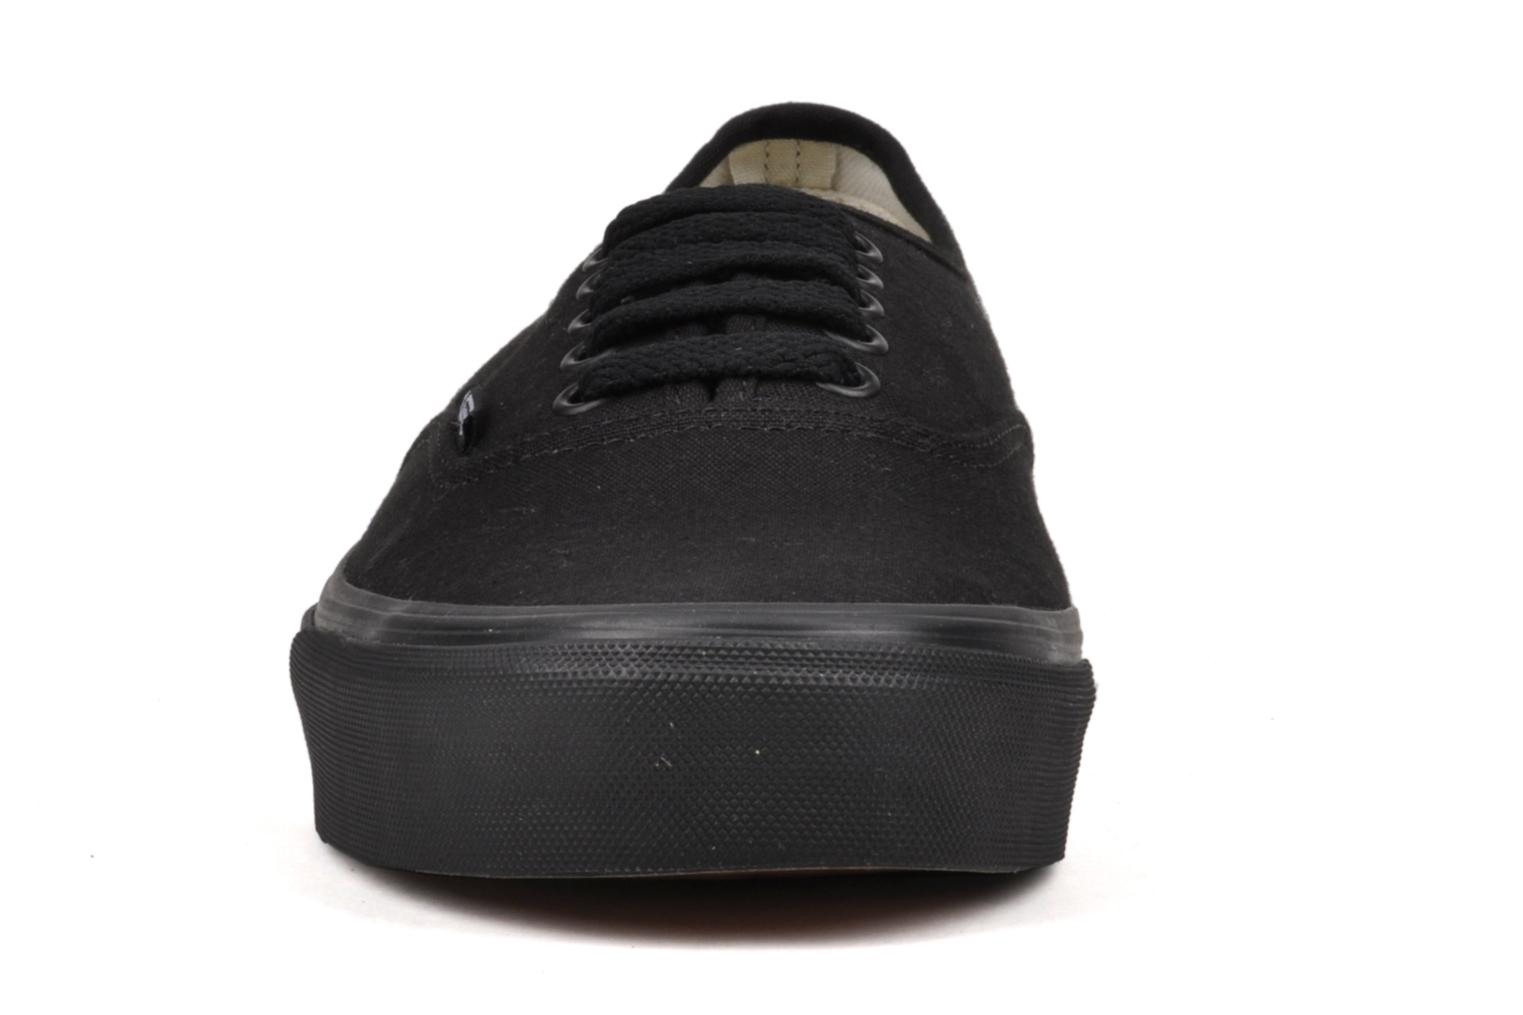 Authentic Black Black